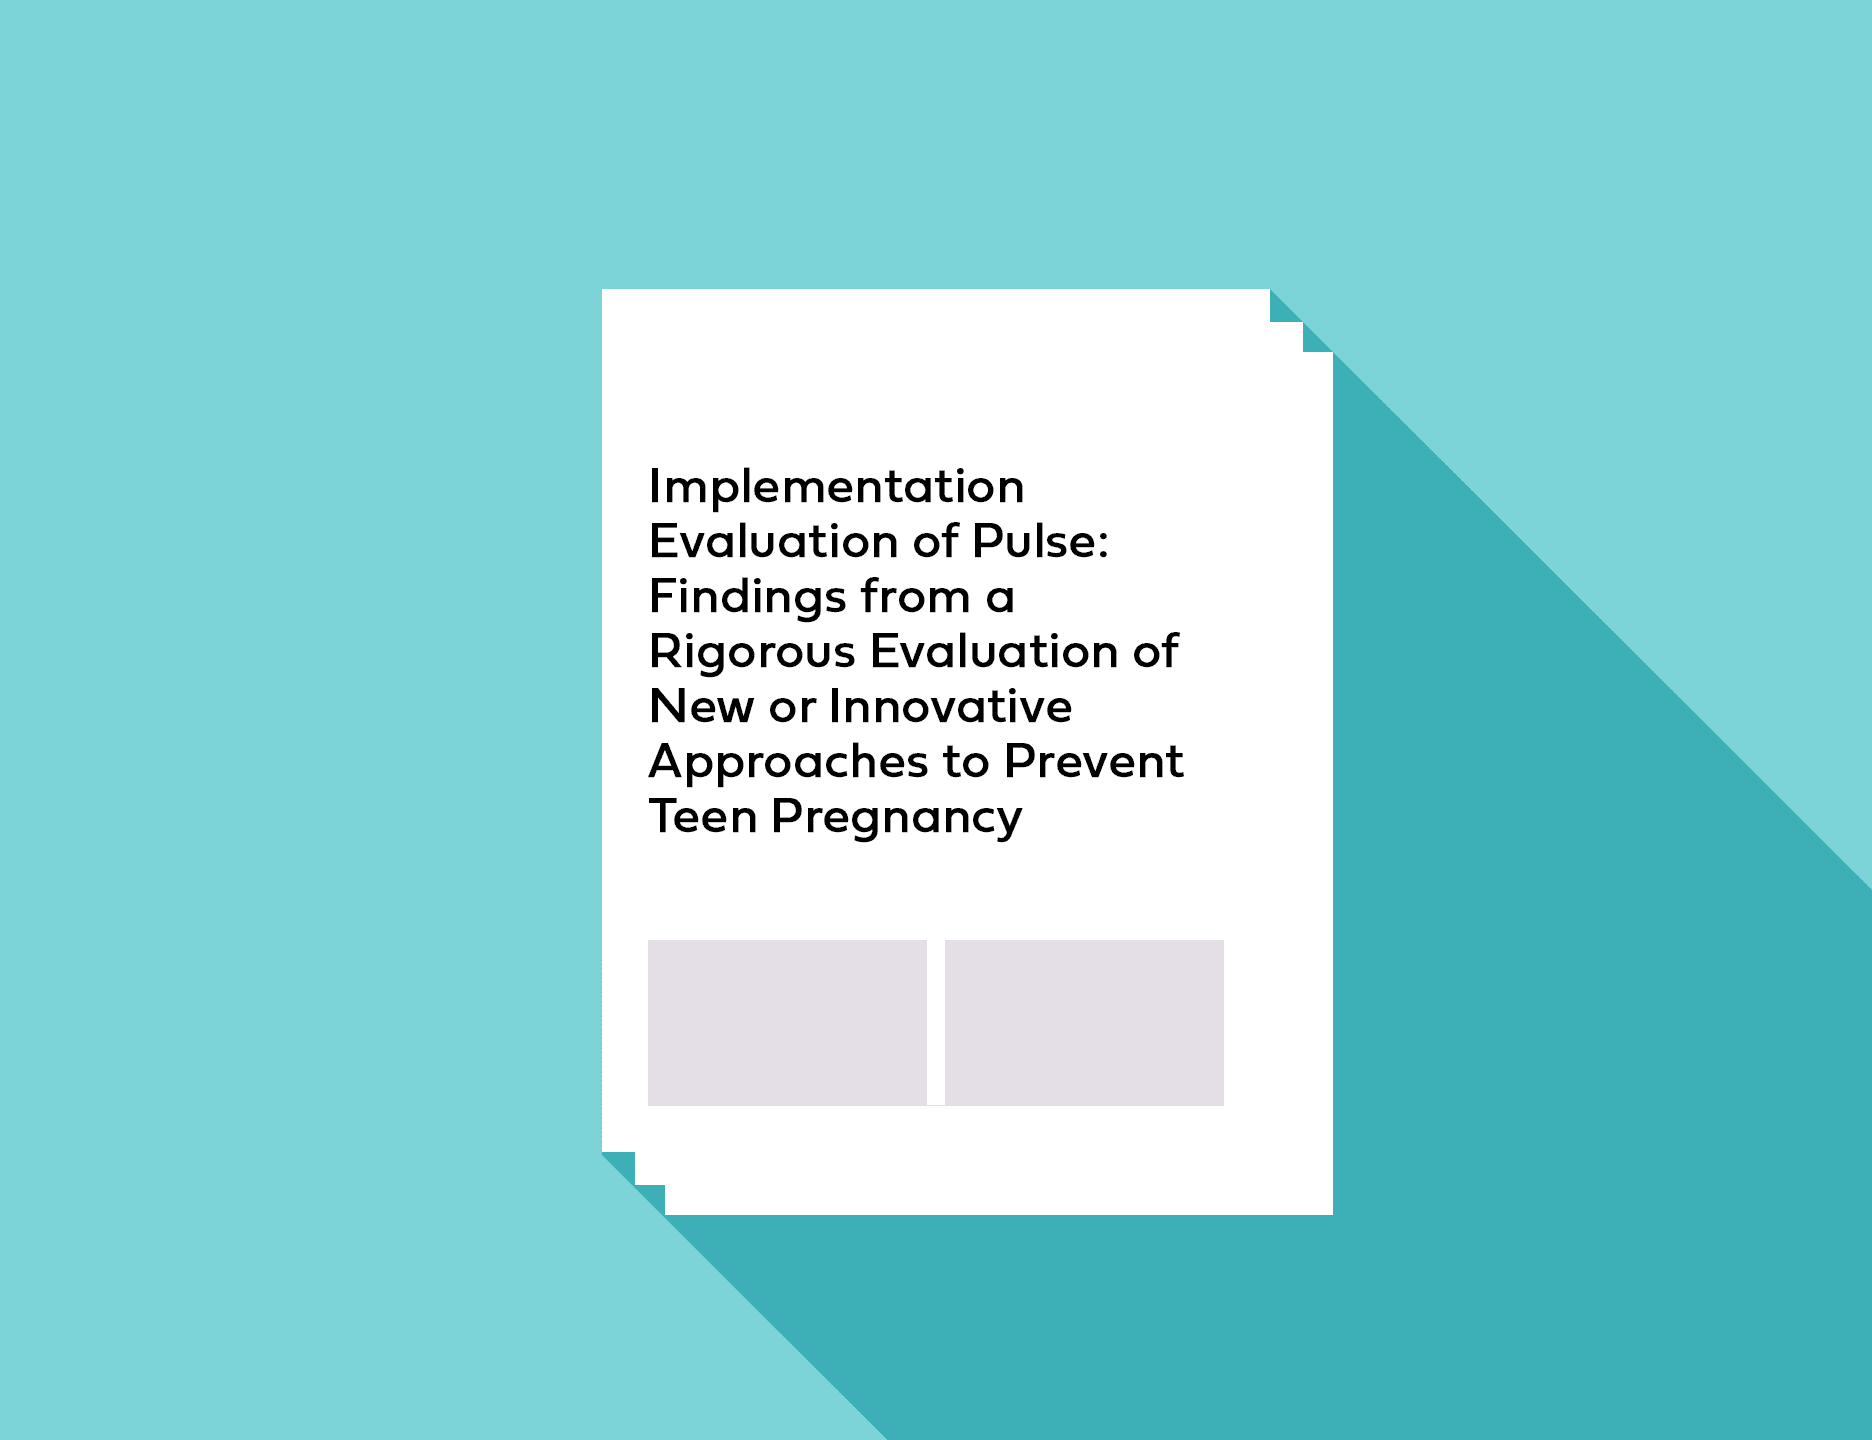 Implementation Evaluation of Pulse: Findings from a Rigorous Evaluation of New or Innovative Approaches to Prevent Teen Pregnancy